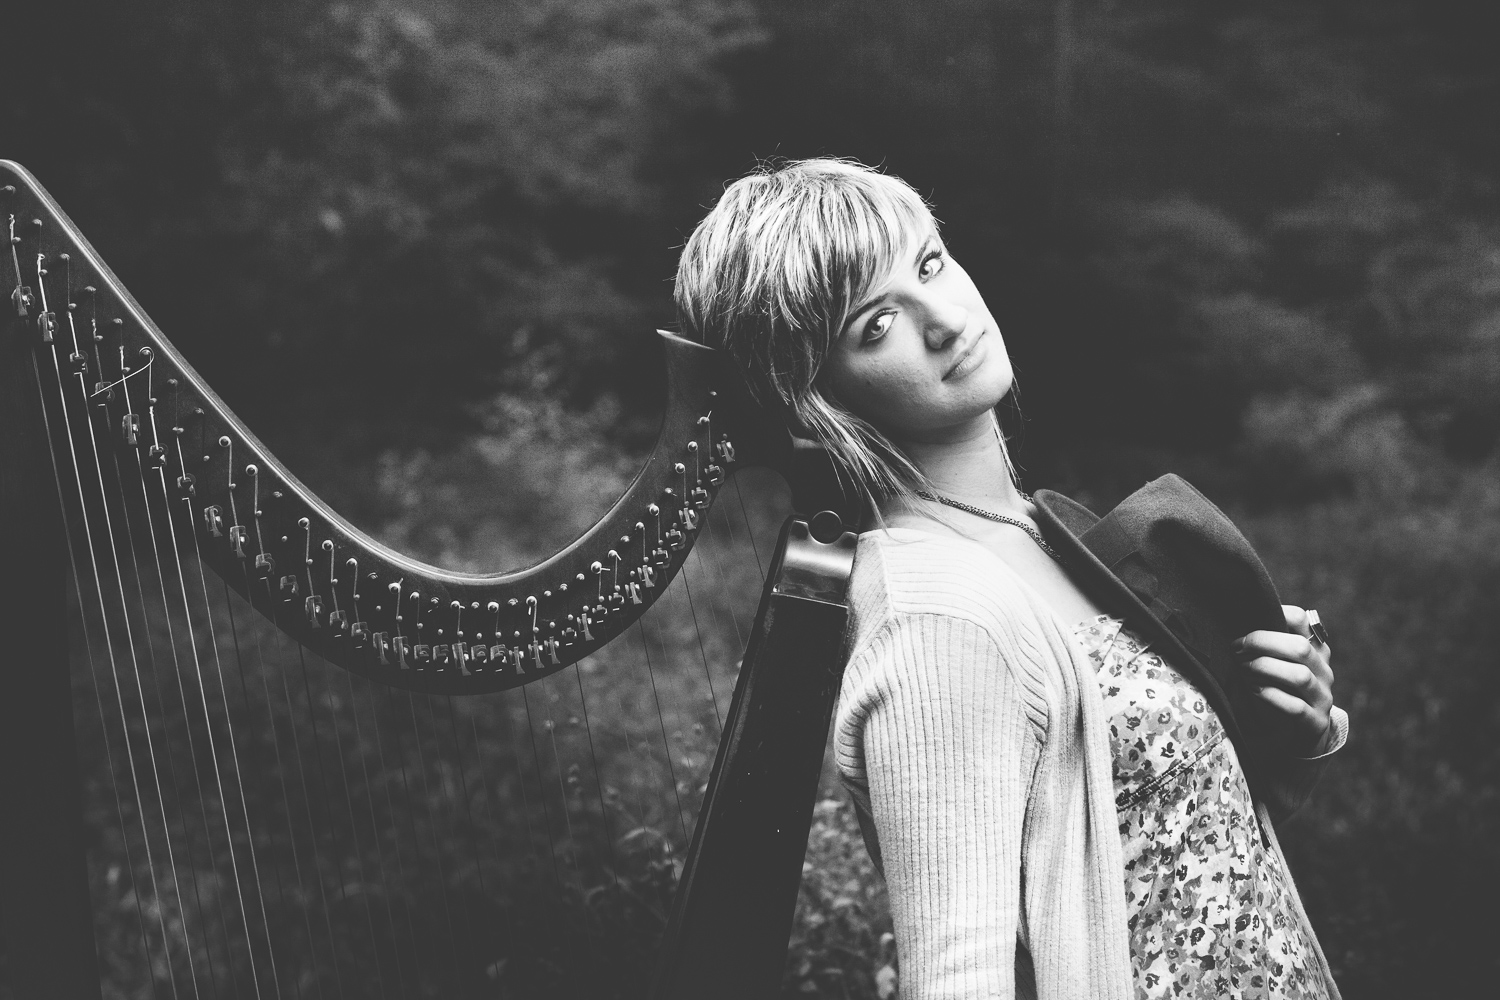 Central New Jersey Photographer Styled Photo Session with Harpists-5.jpg